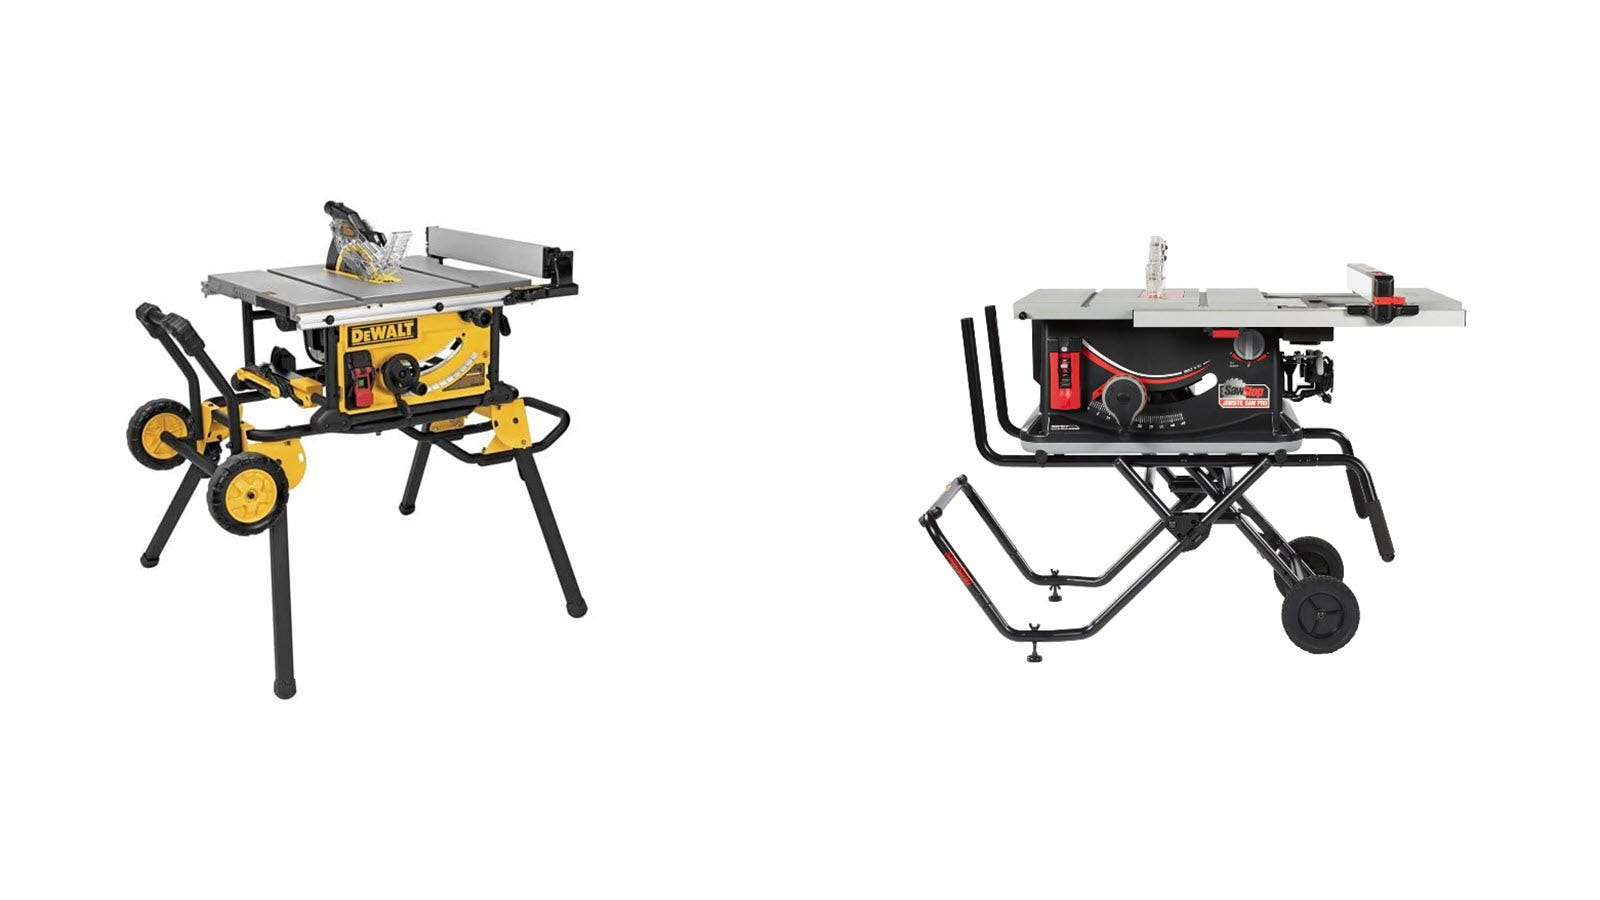 A DeWalt table saw and Saw Stop table saw side by side.